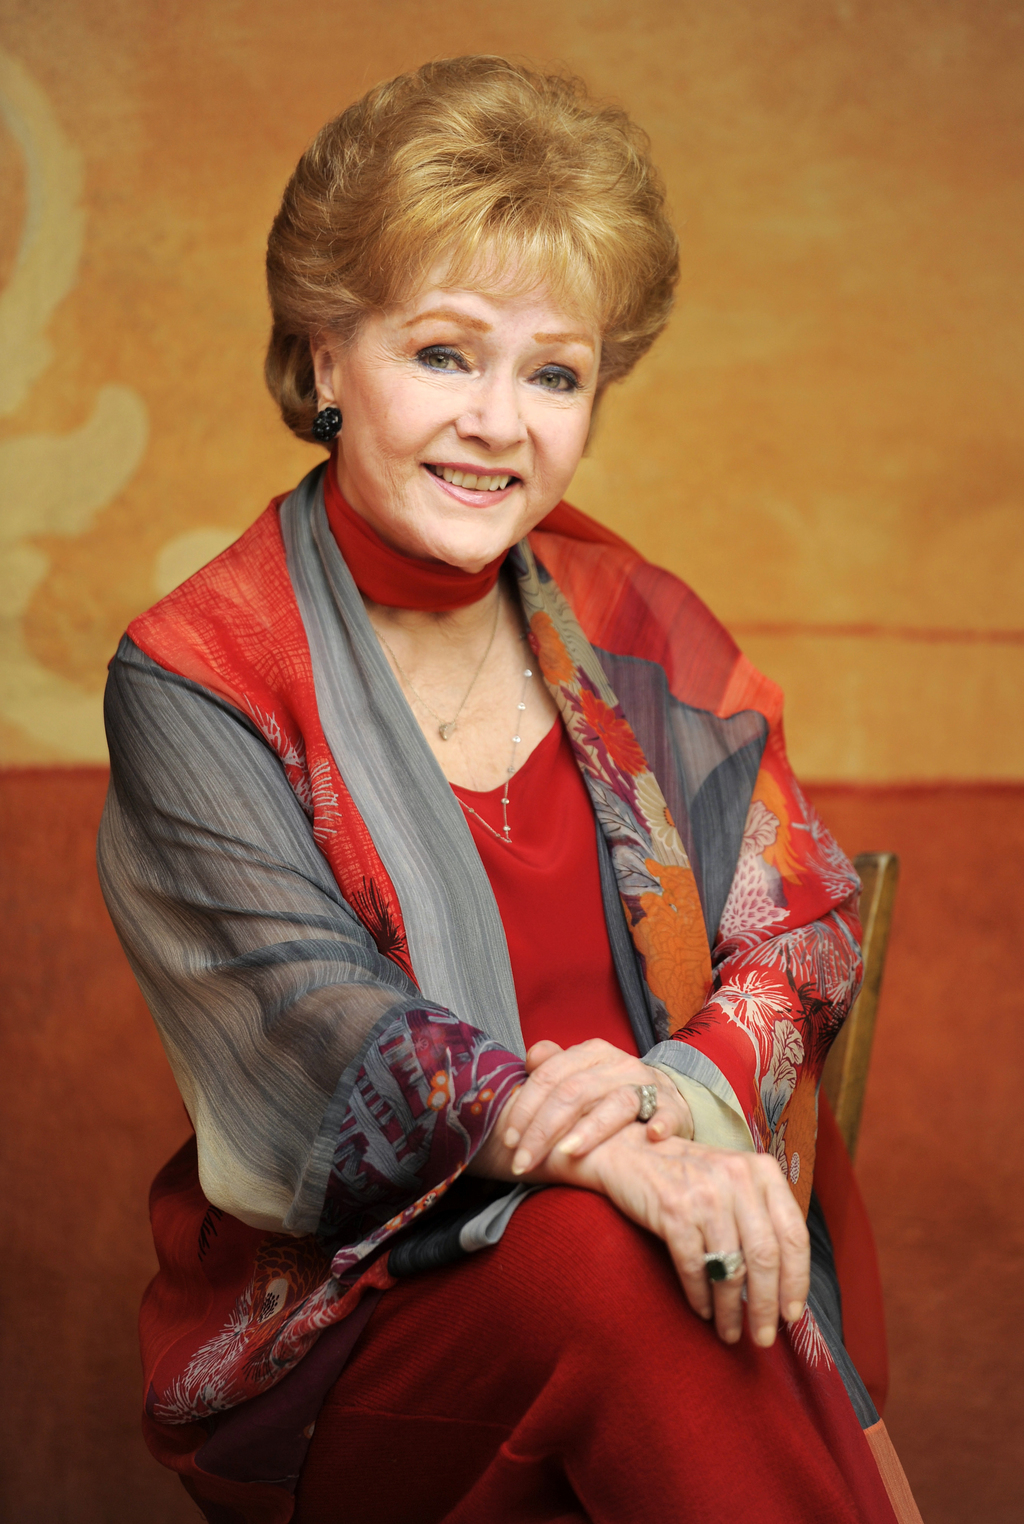 FILE - In this May 21, 2013 file photo, actress Debbie Reynolds poses for a portrait in Beverly Hills, Calif. Reynolds, star of the 195...